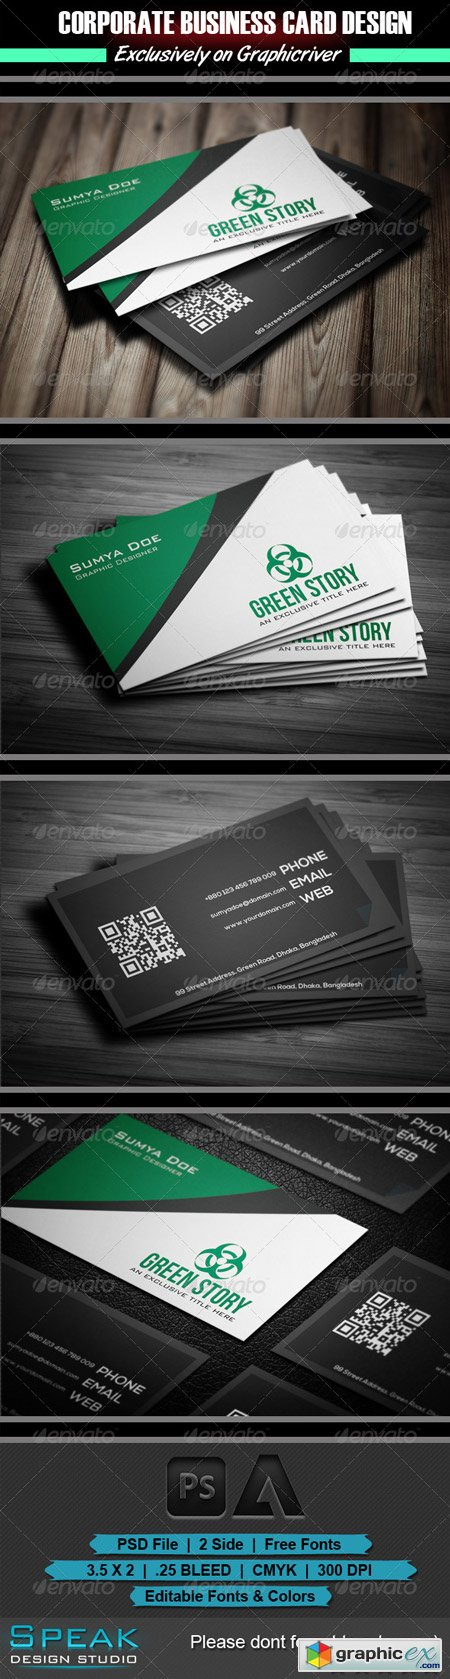 Green Story Business Card